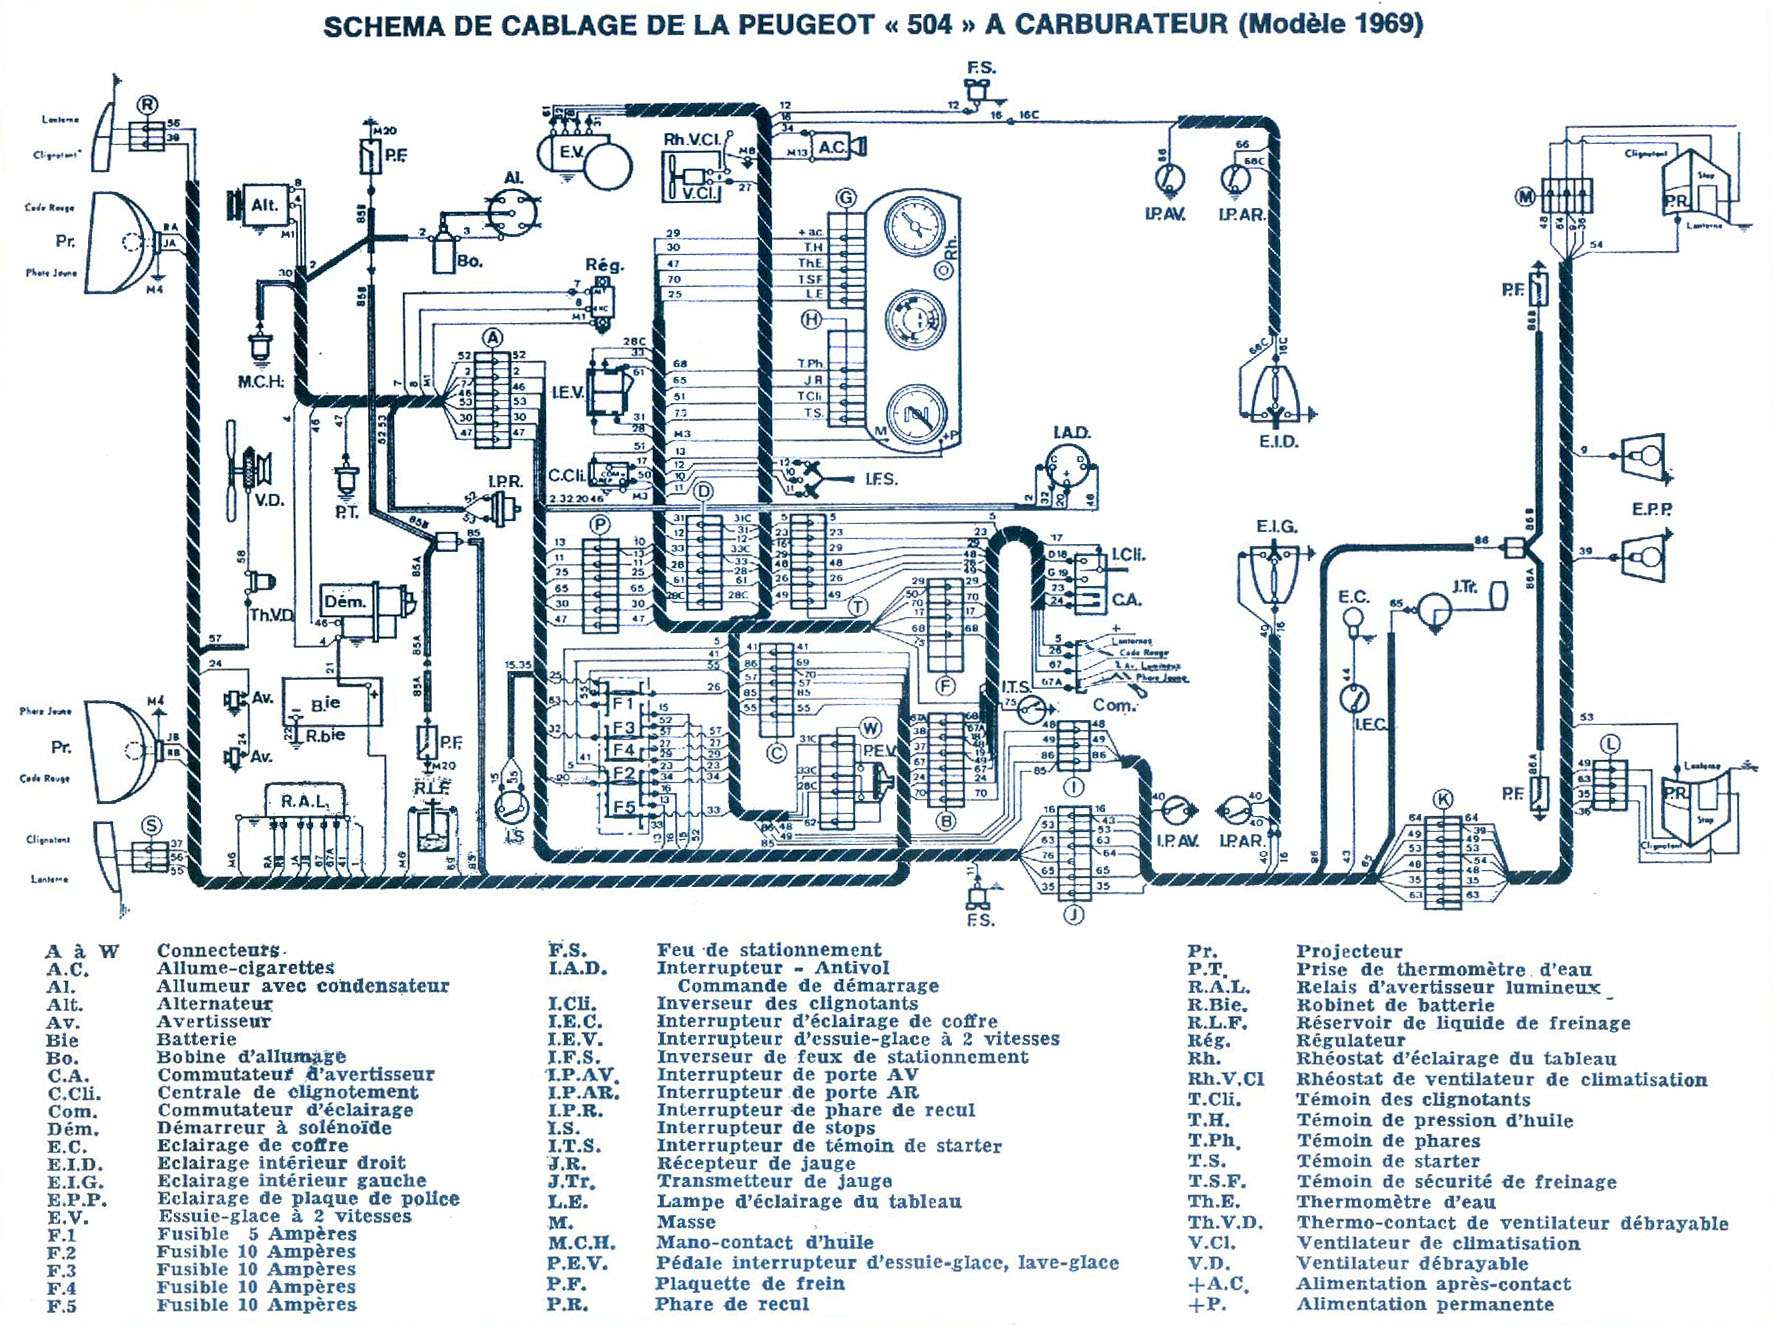 hight resolution of electrical scheme of the 1969 benzin 504 with carburetor 330ko